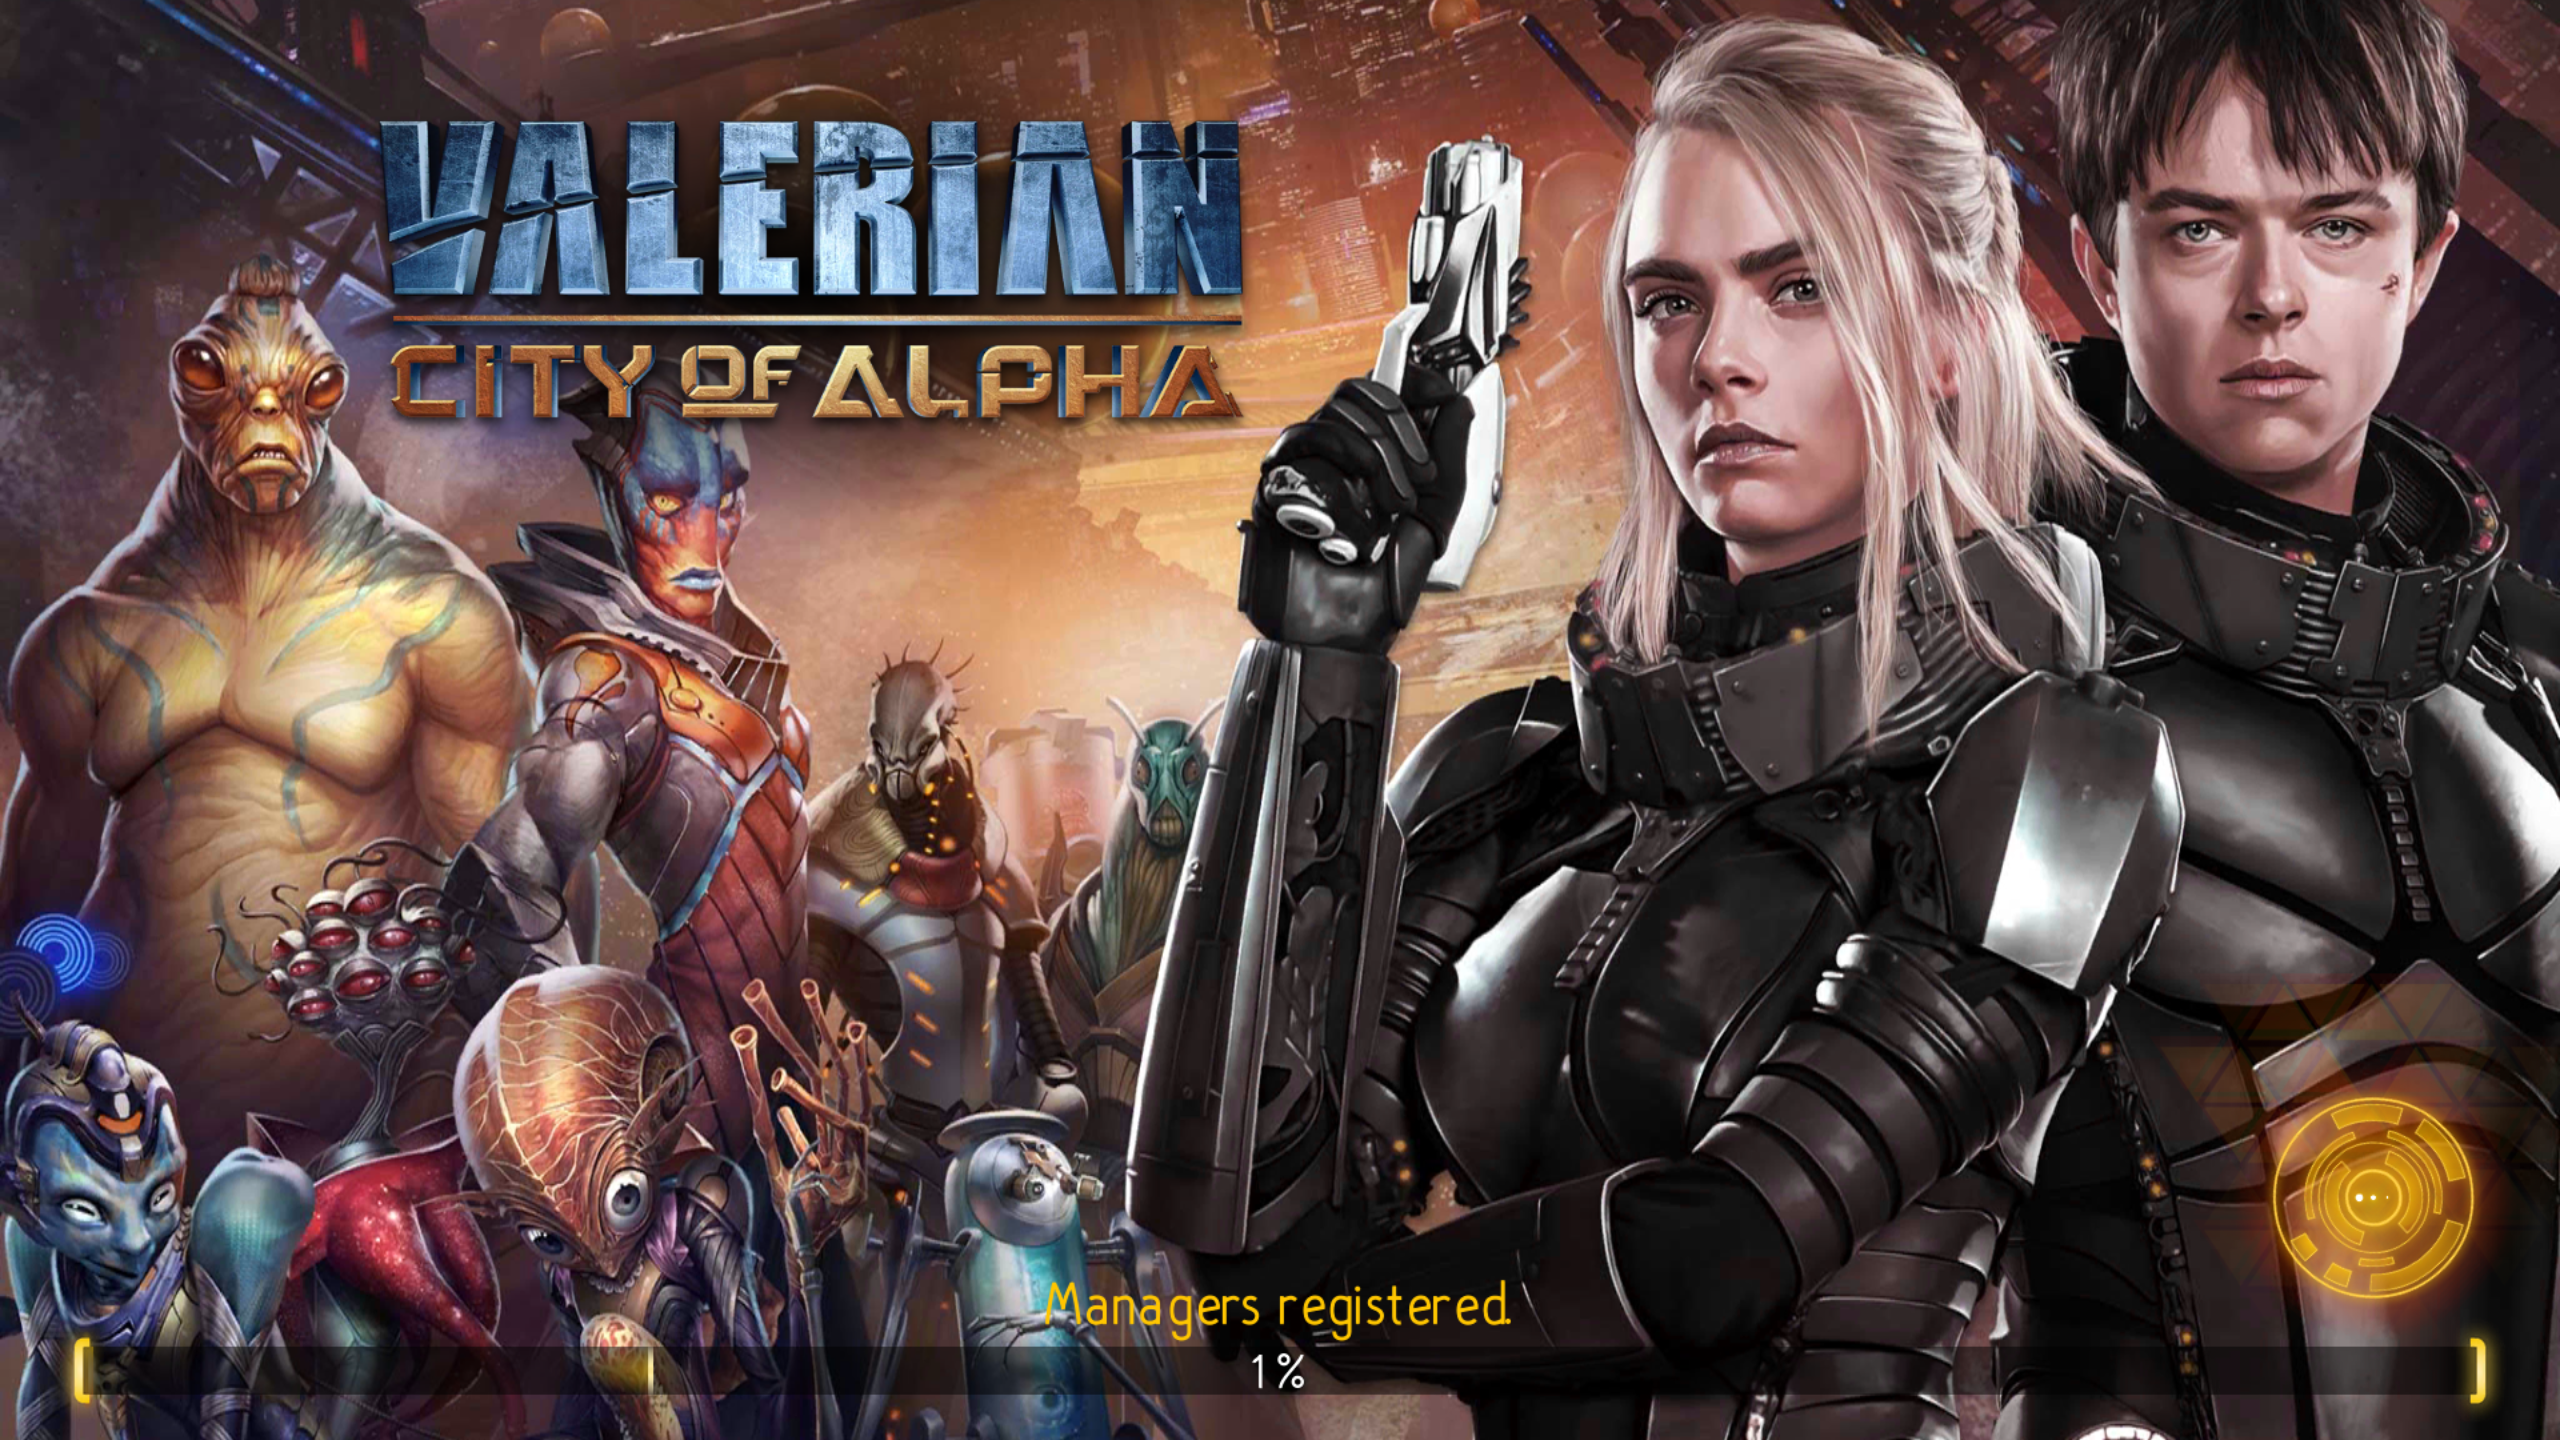 valerian-city-of-alpha-1